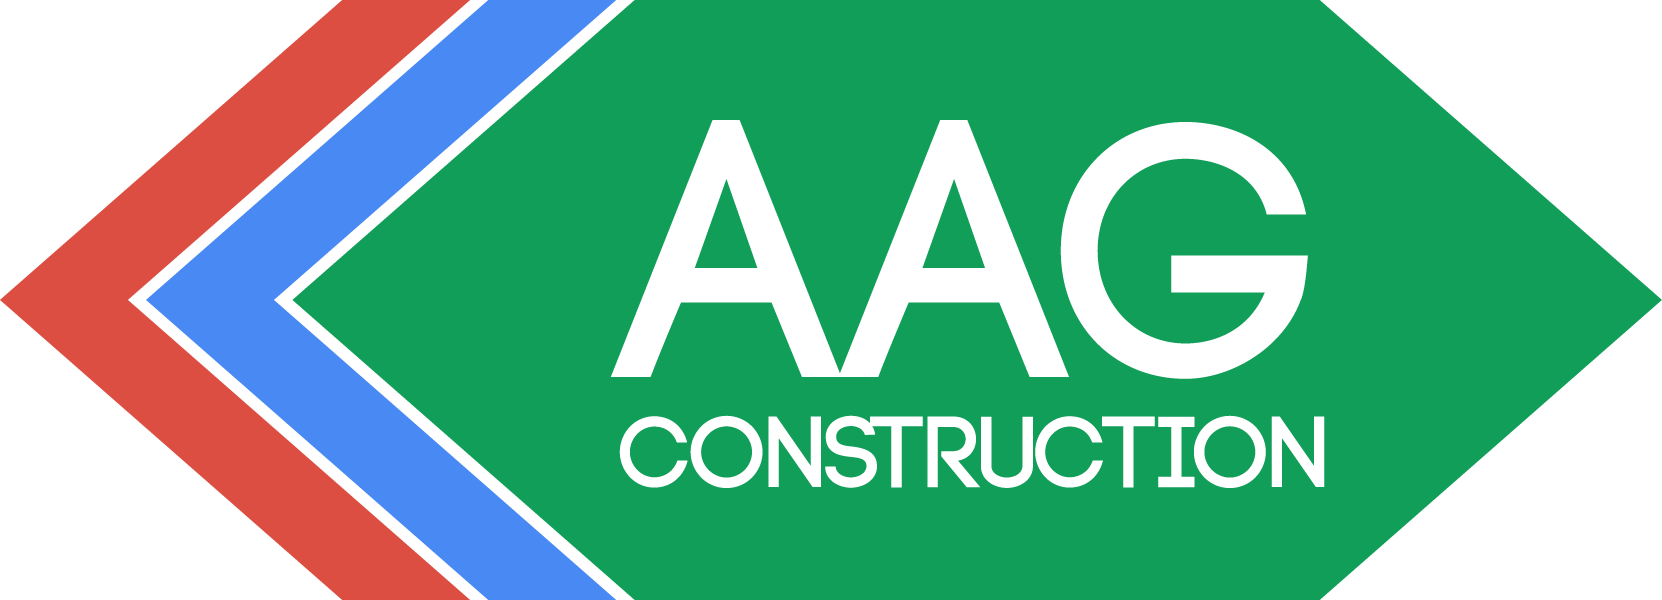 aag-construction-logo